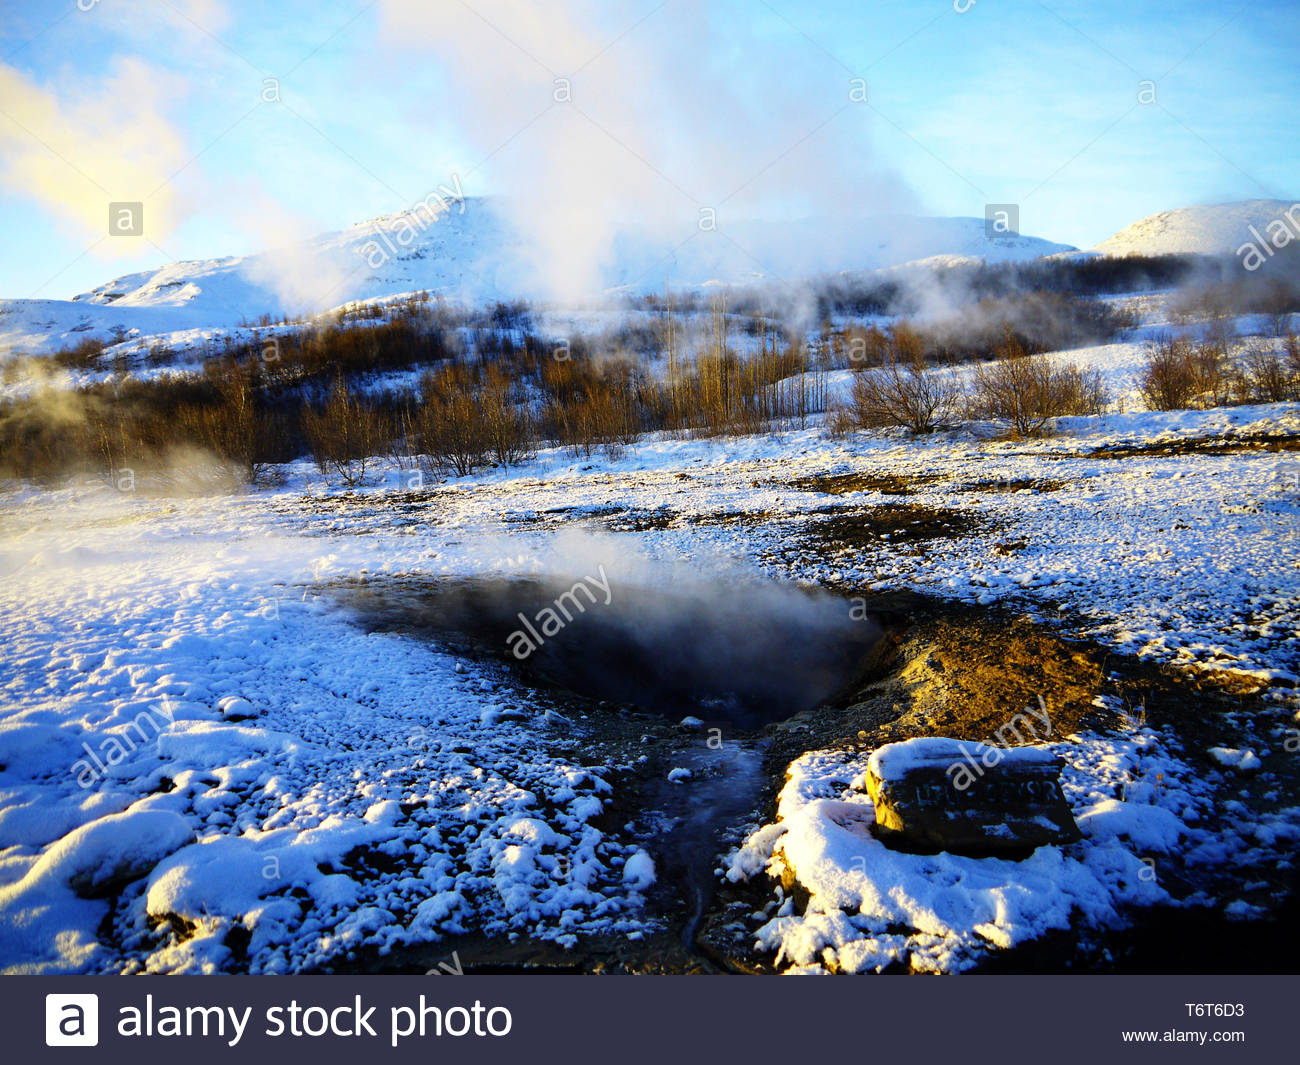 Little Geysir - close up view of Litli Geysir, Haukadalur valley, Southern Iceland, steaming with surrounding meadow covered in snow Stock Photo